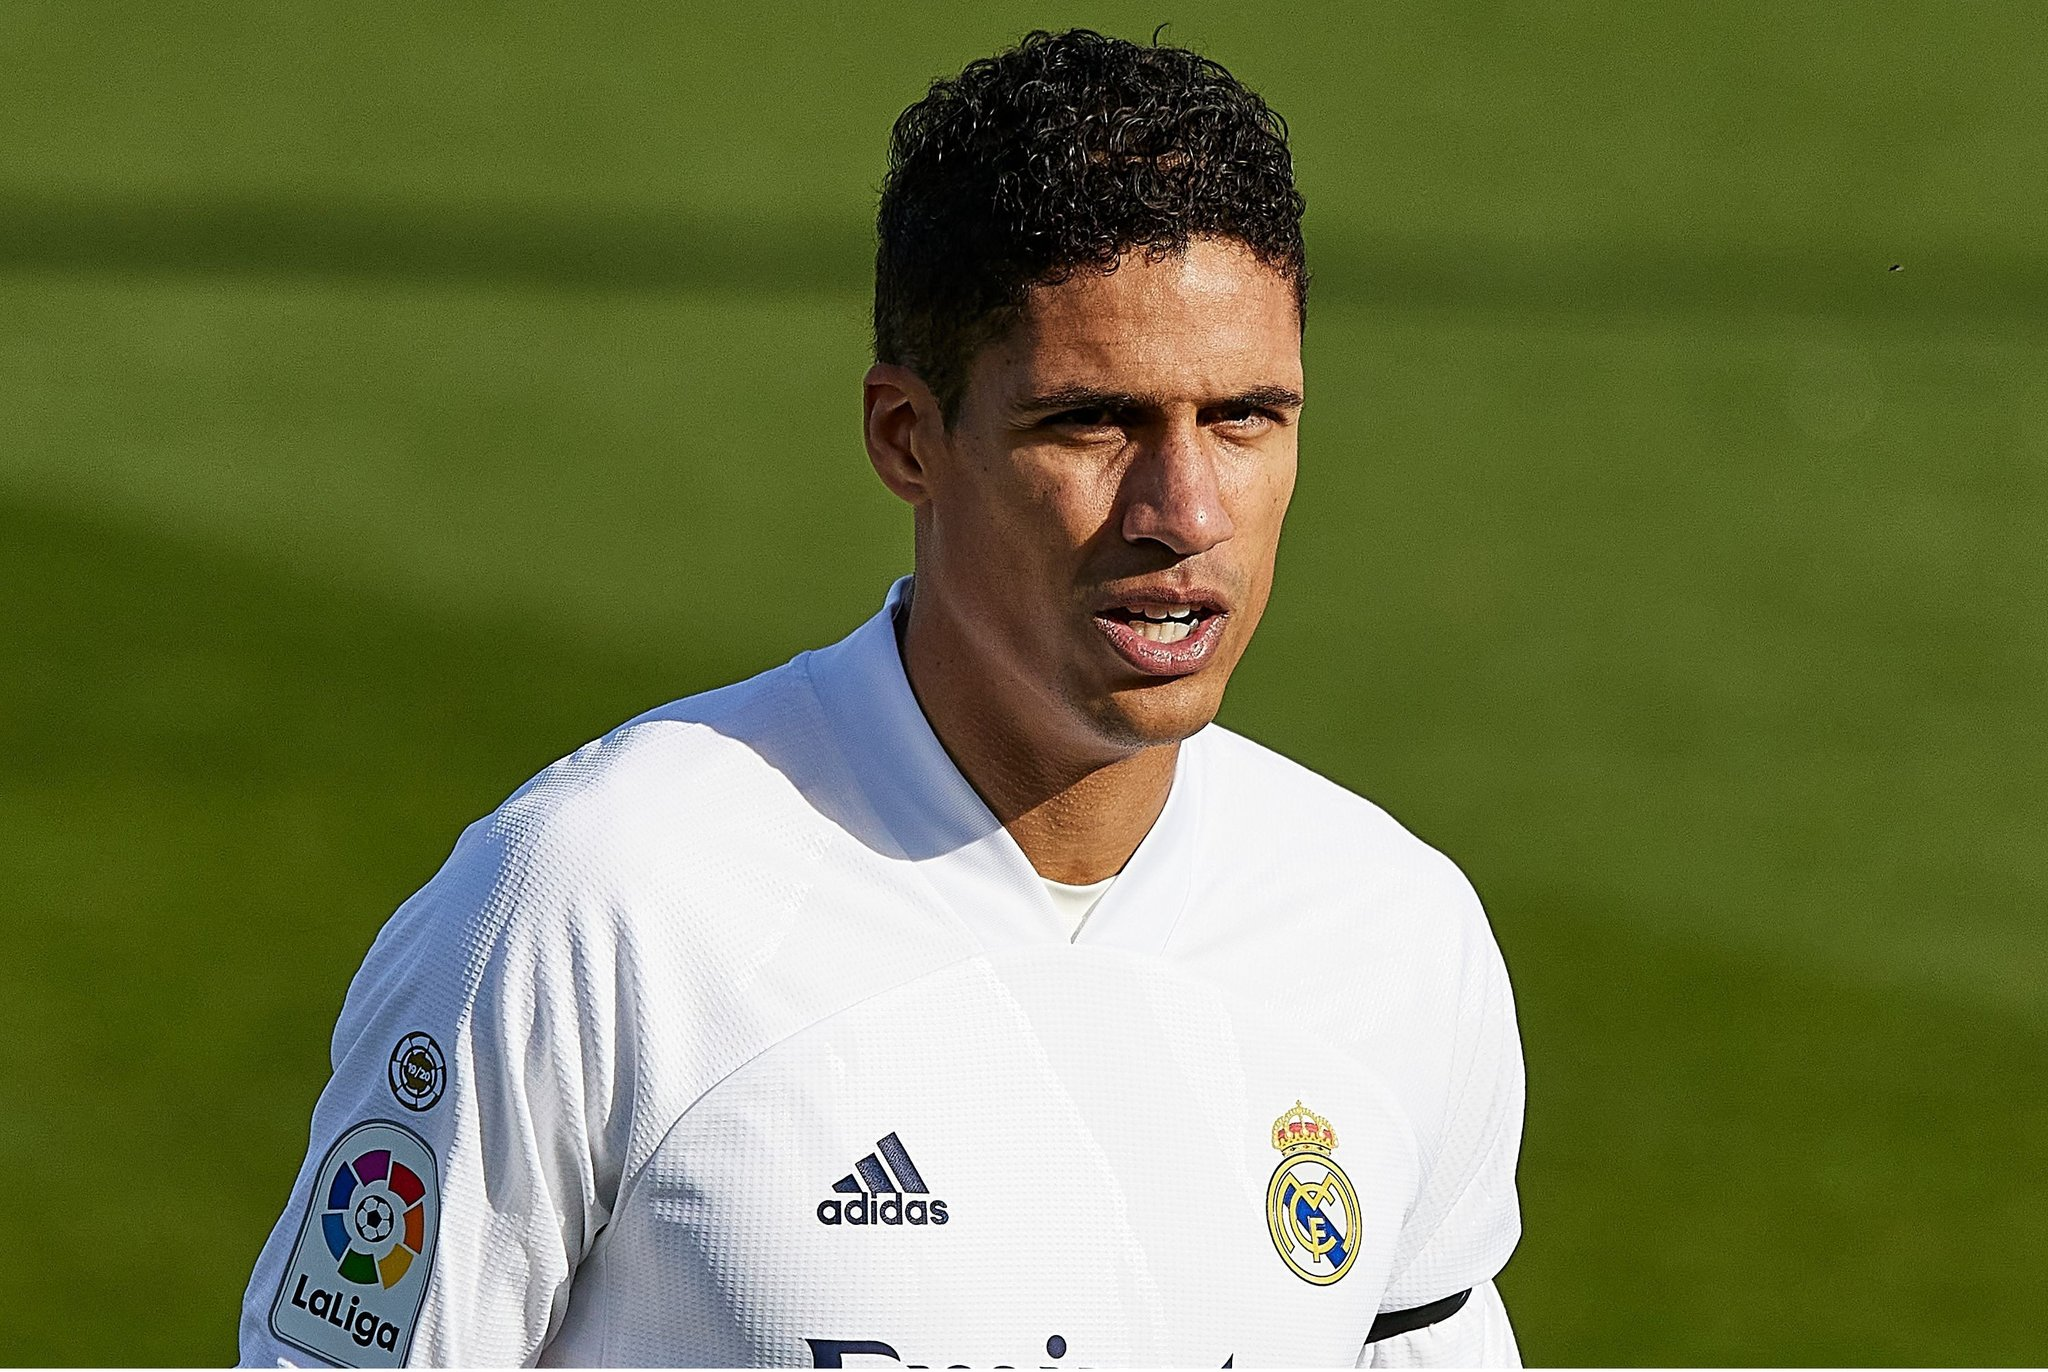 Manchester United are eyeing a summer 'bargain' move for Raphaël Varane. Real Madrid would be willing to sell the defender for around £60m, but United want to drive that figure down. (Source: Daily Mail) https://t.co/lZqpgx1Mv6